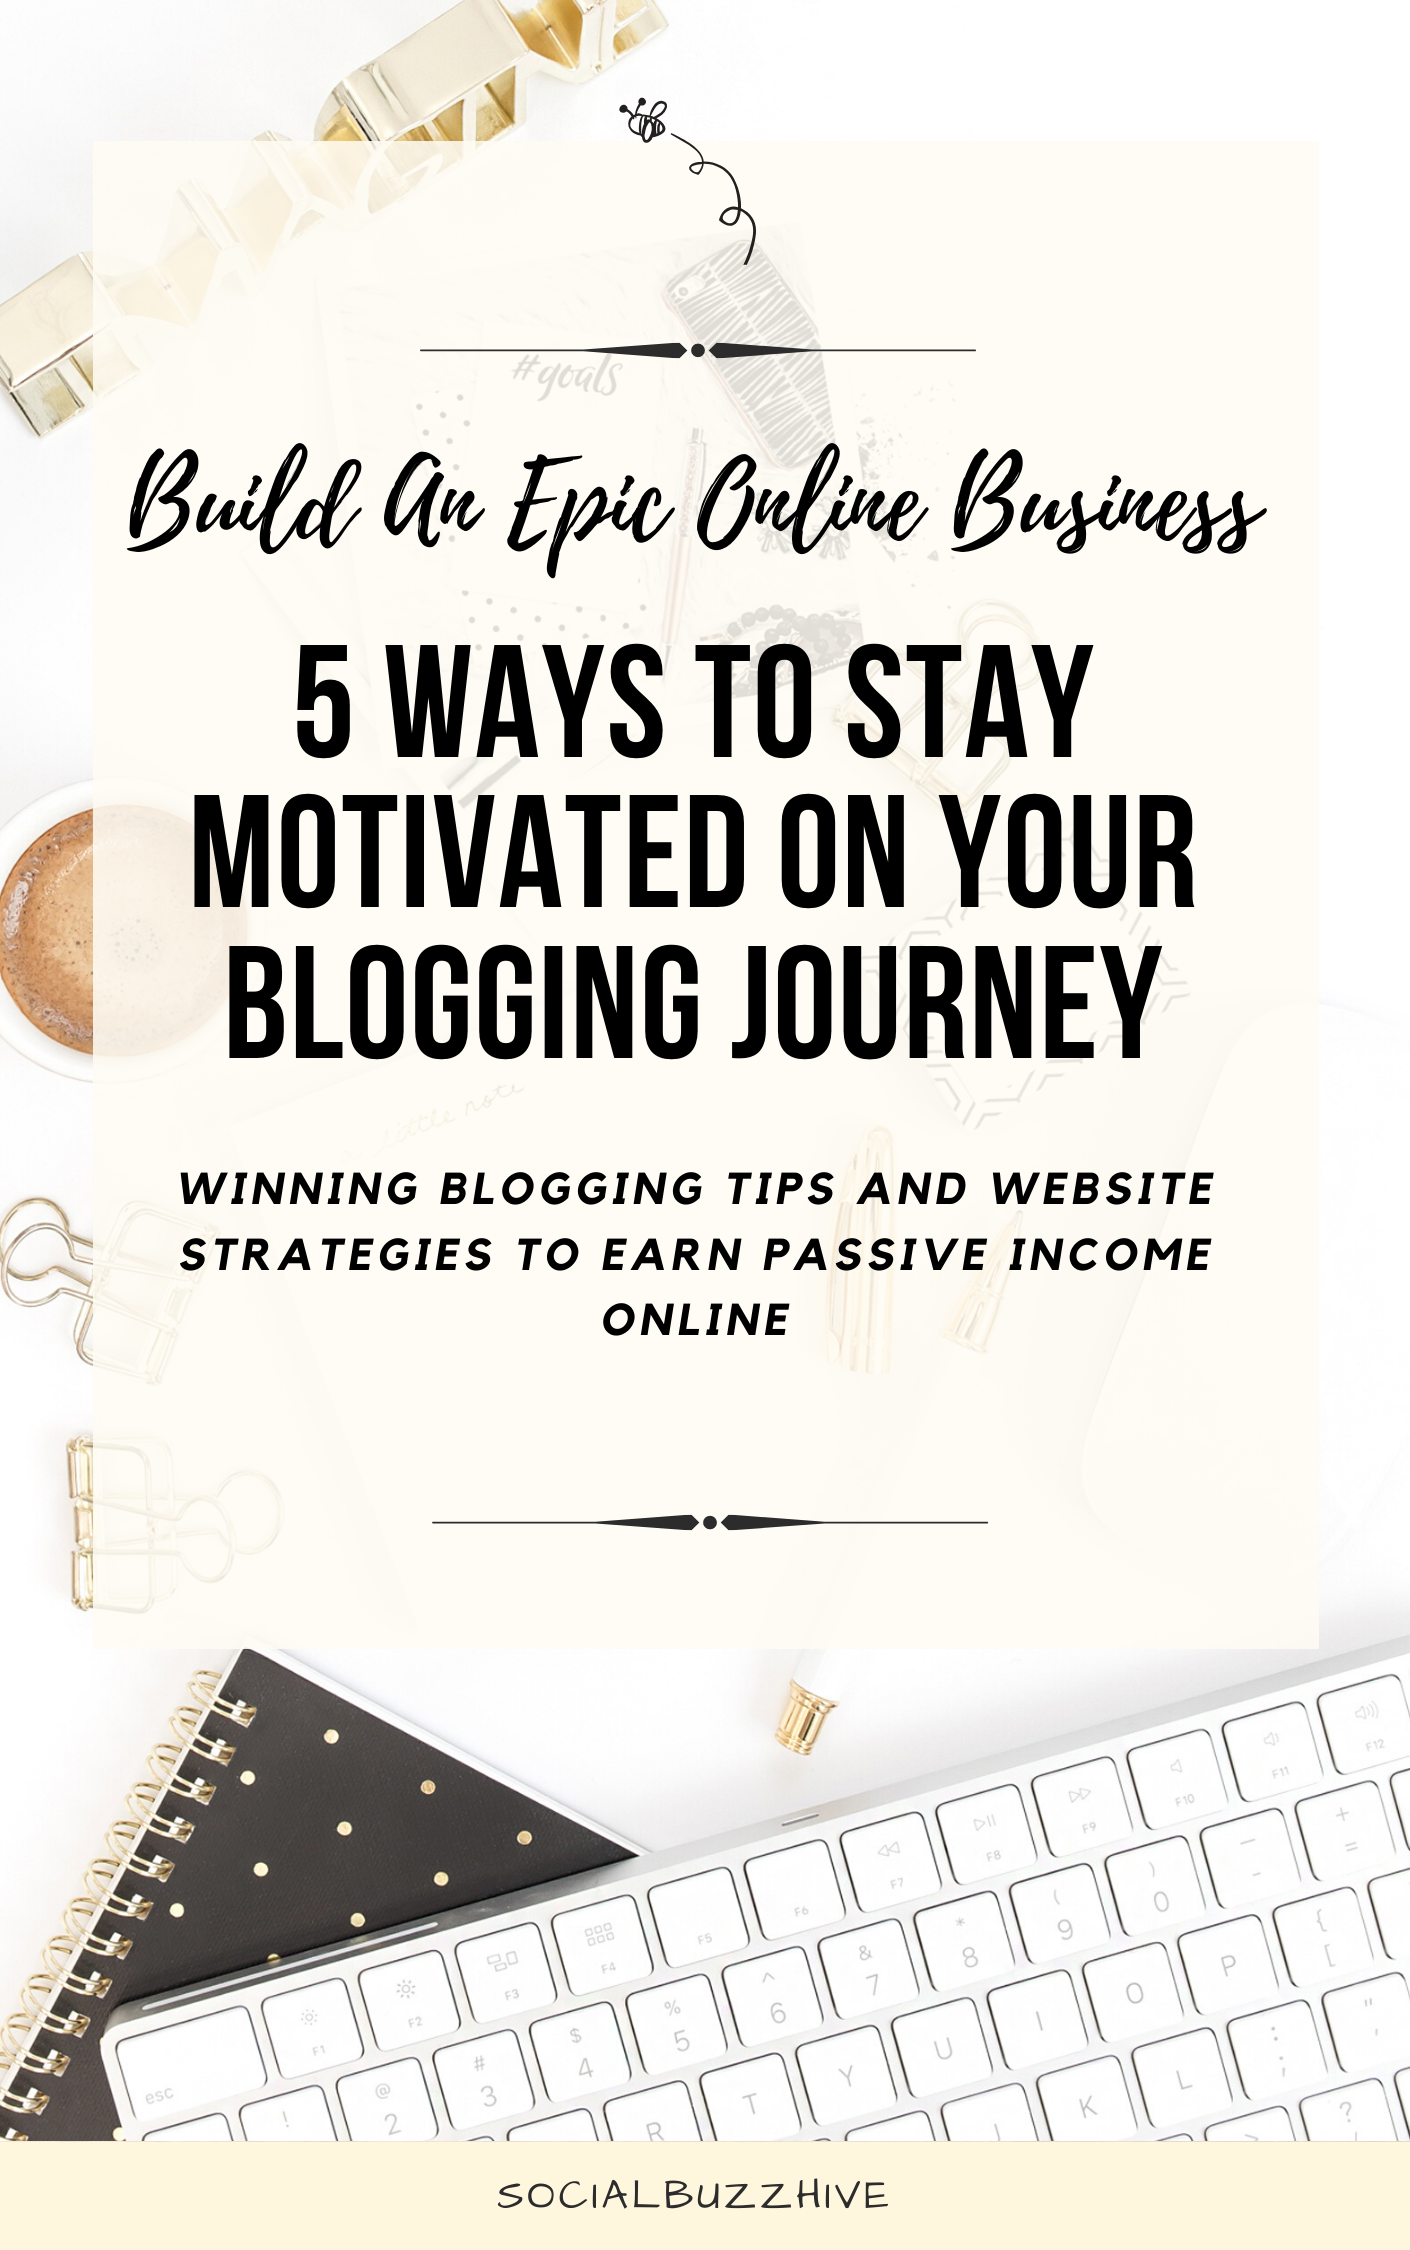 5 ways to stay motivated on your blogging journey